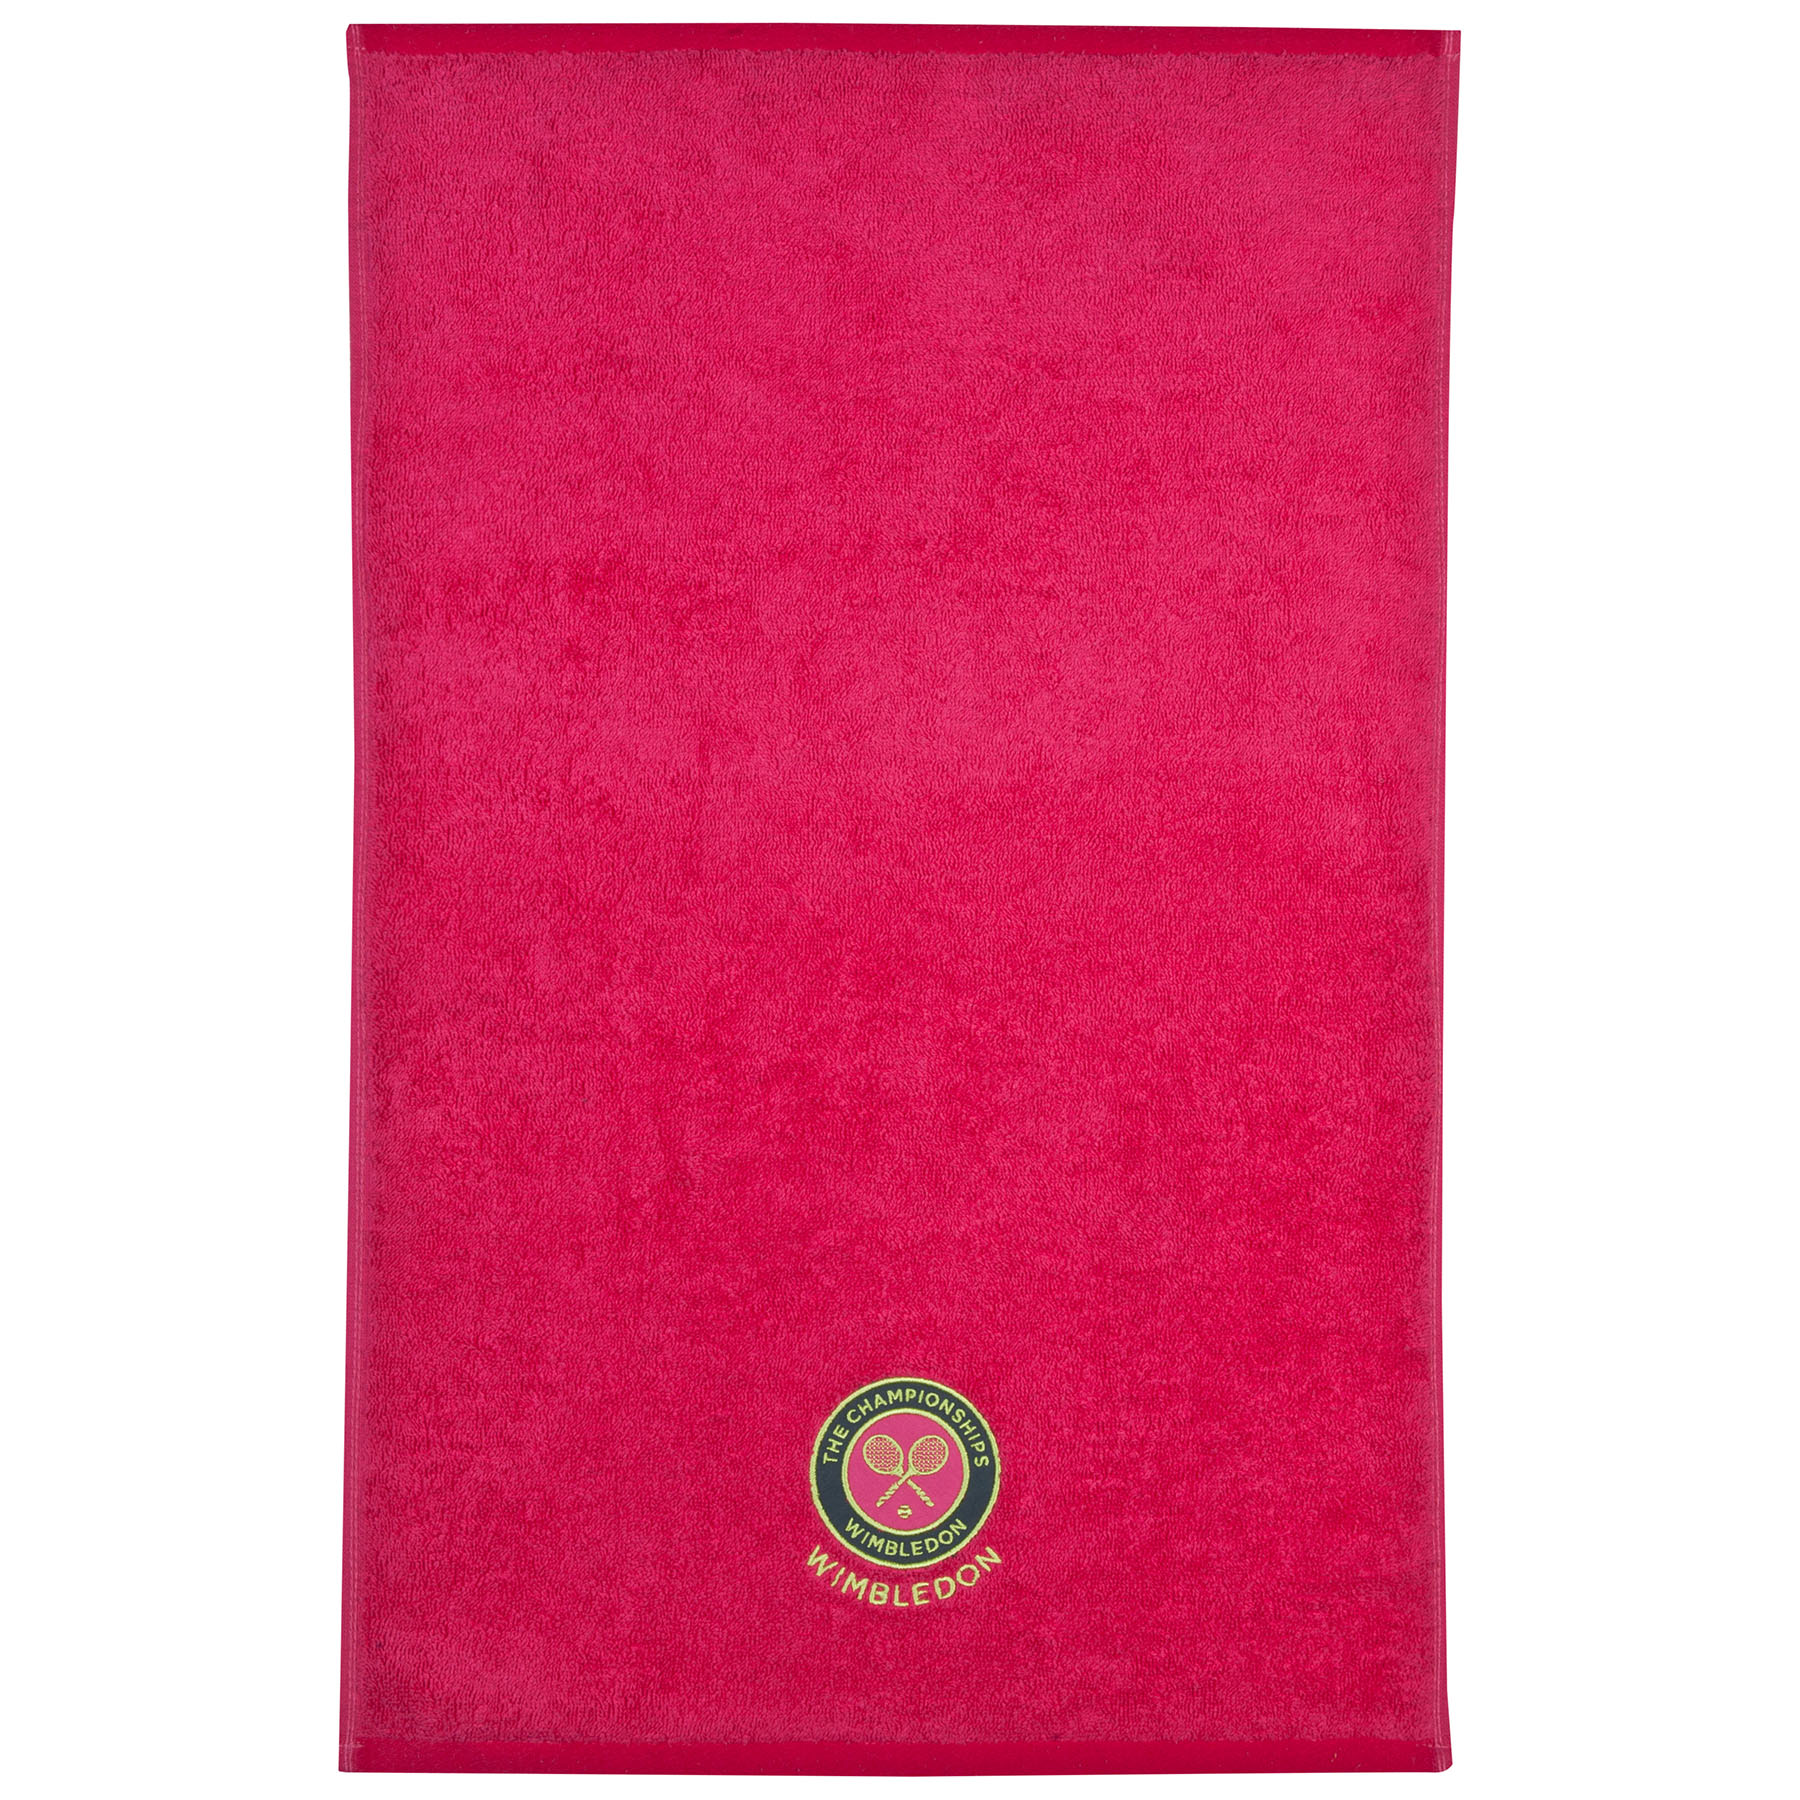 Wimbledon Ladies 2015 Guest Towel - Hot Pink